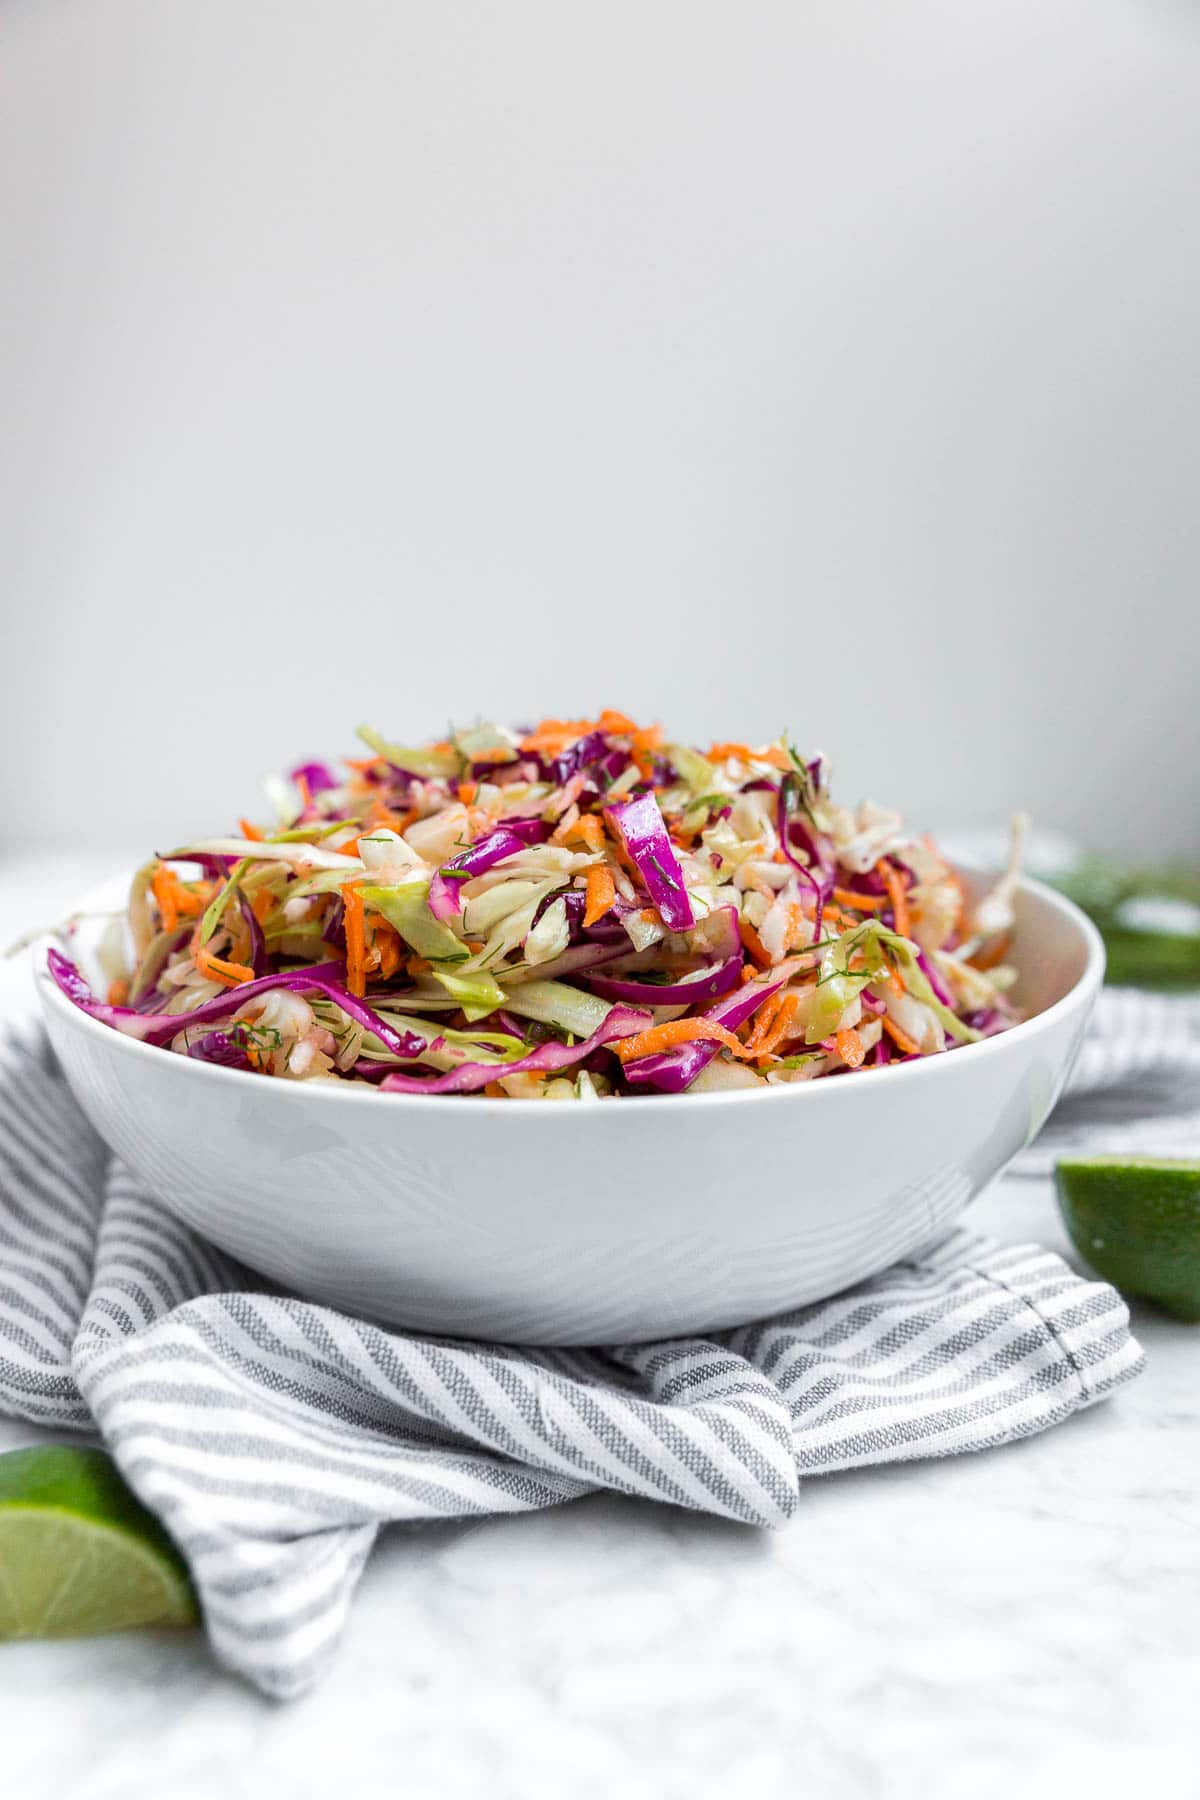 A straight on view of a white bowl containing cabbage carrot coleslaw with dill vinaigrette and lime wedges on a table.